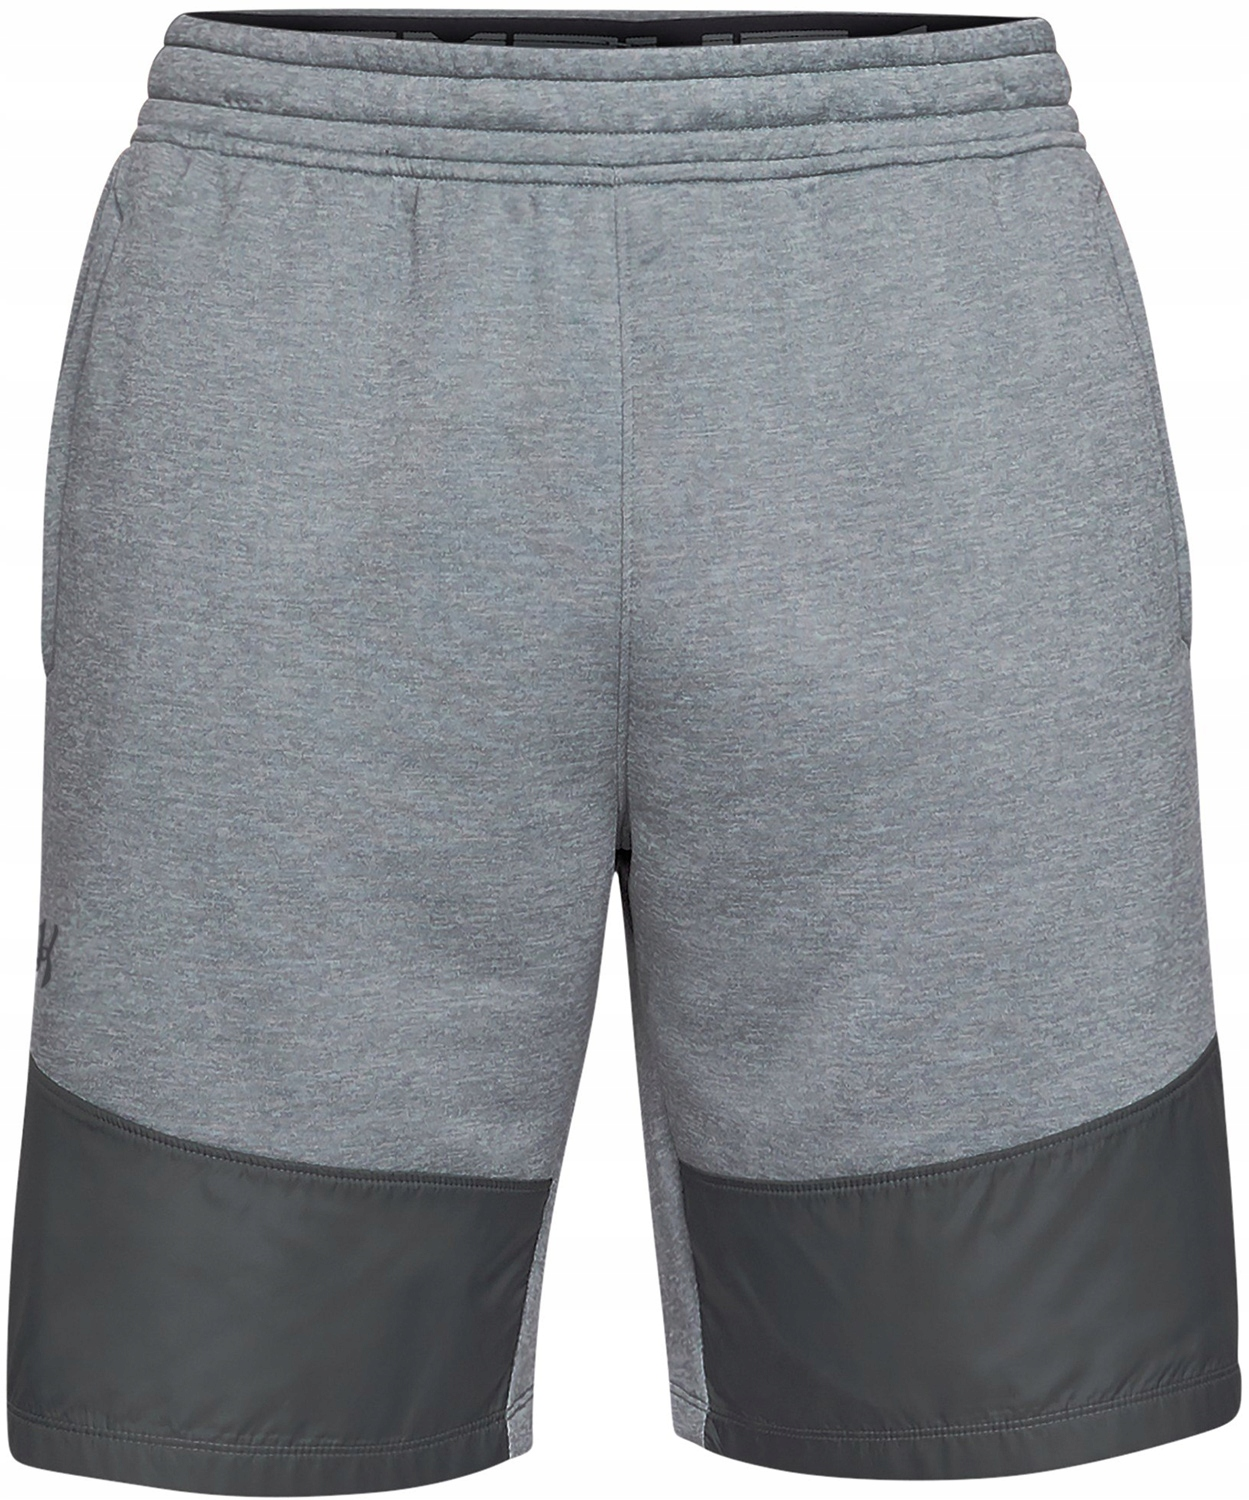 Spodenki Under Armour MK1 Terry Short Gray # L